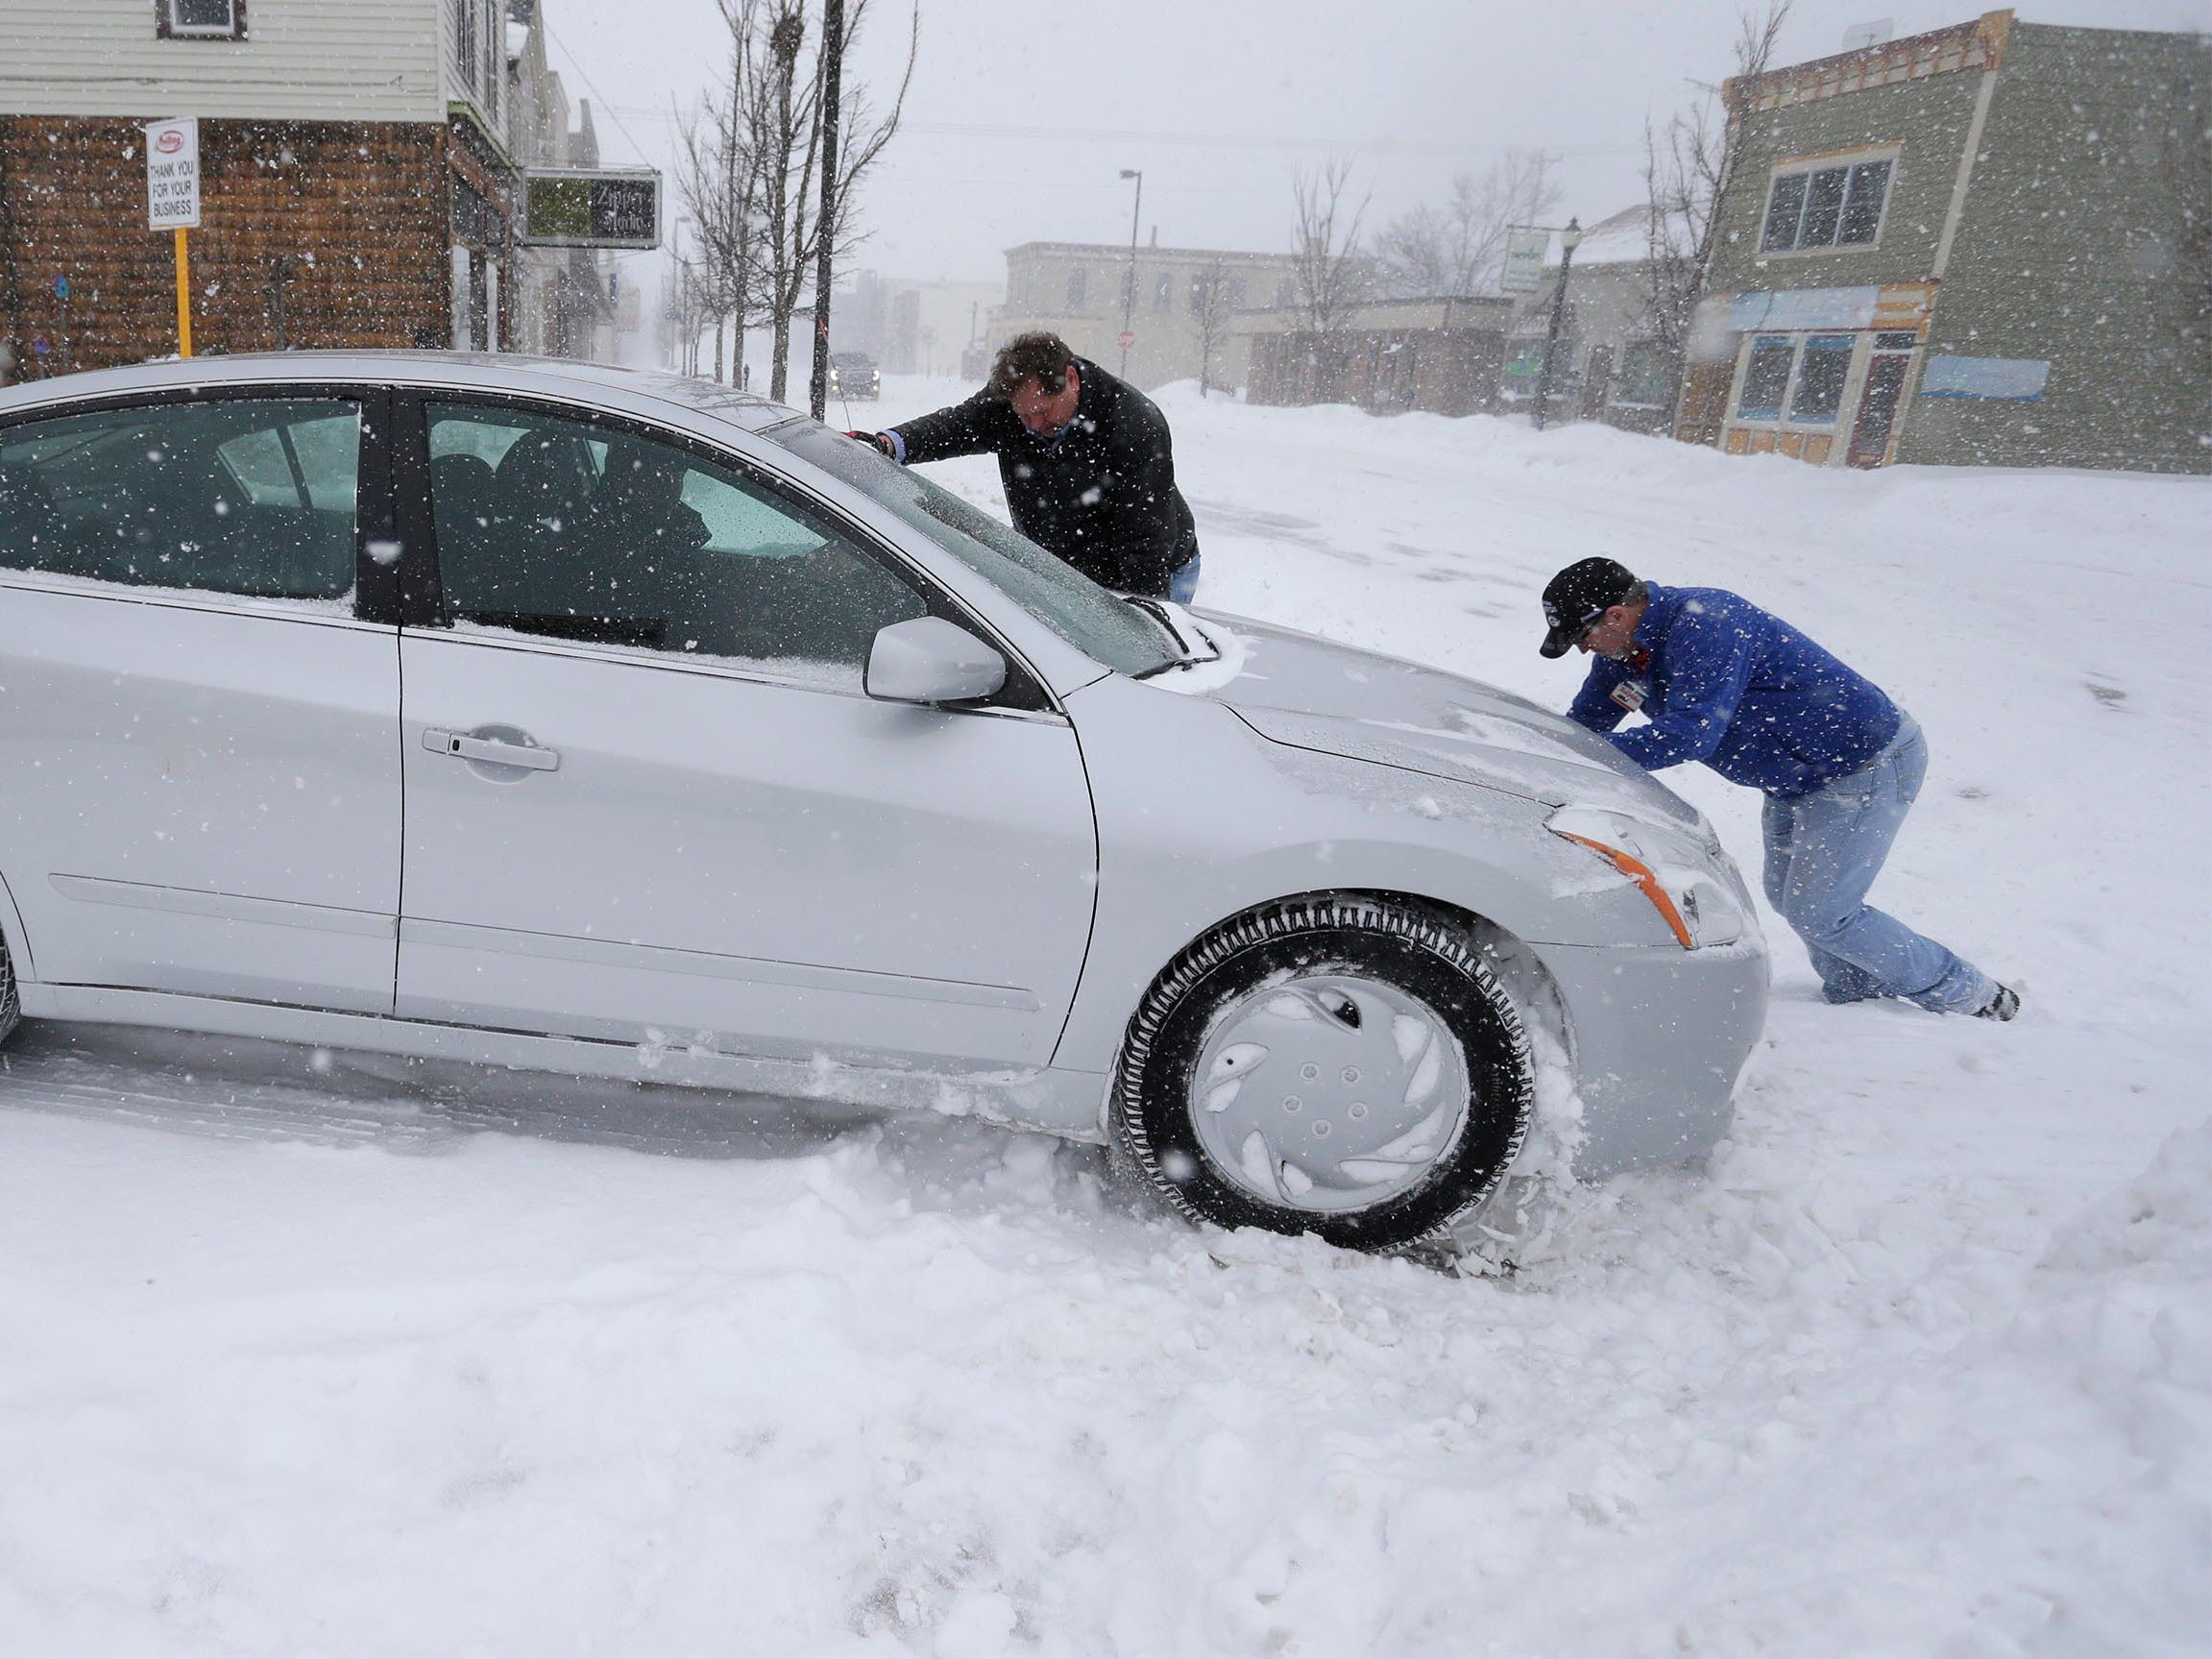 Trilling True Value's Greg Parmly, left, and Chris Schramm, help push a customer's car out of a snow bank in Sheboygan, Wis. Parmly said his store sold 15 snowblowers last week in anticipation of the storm.